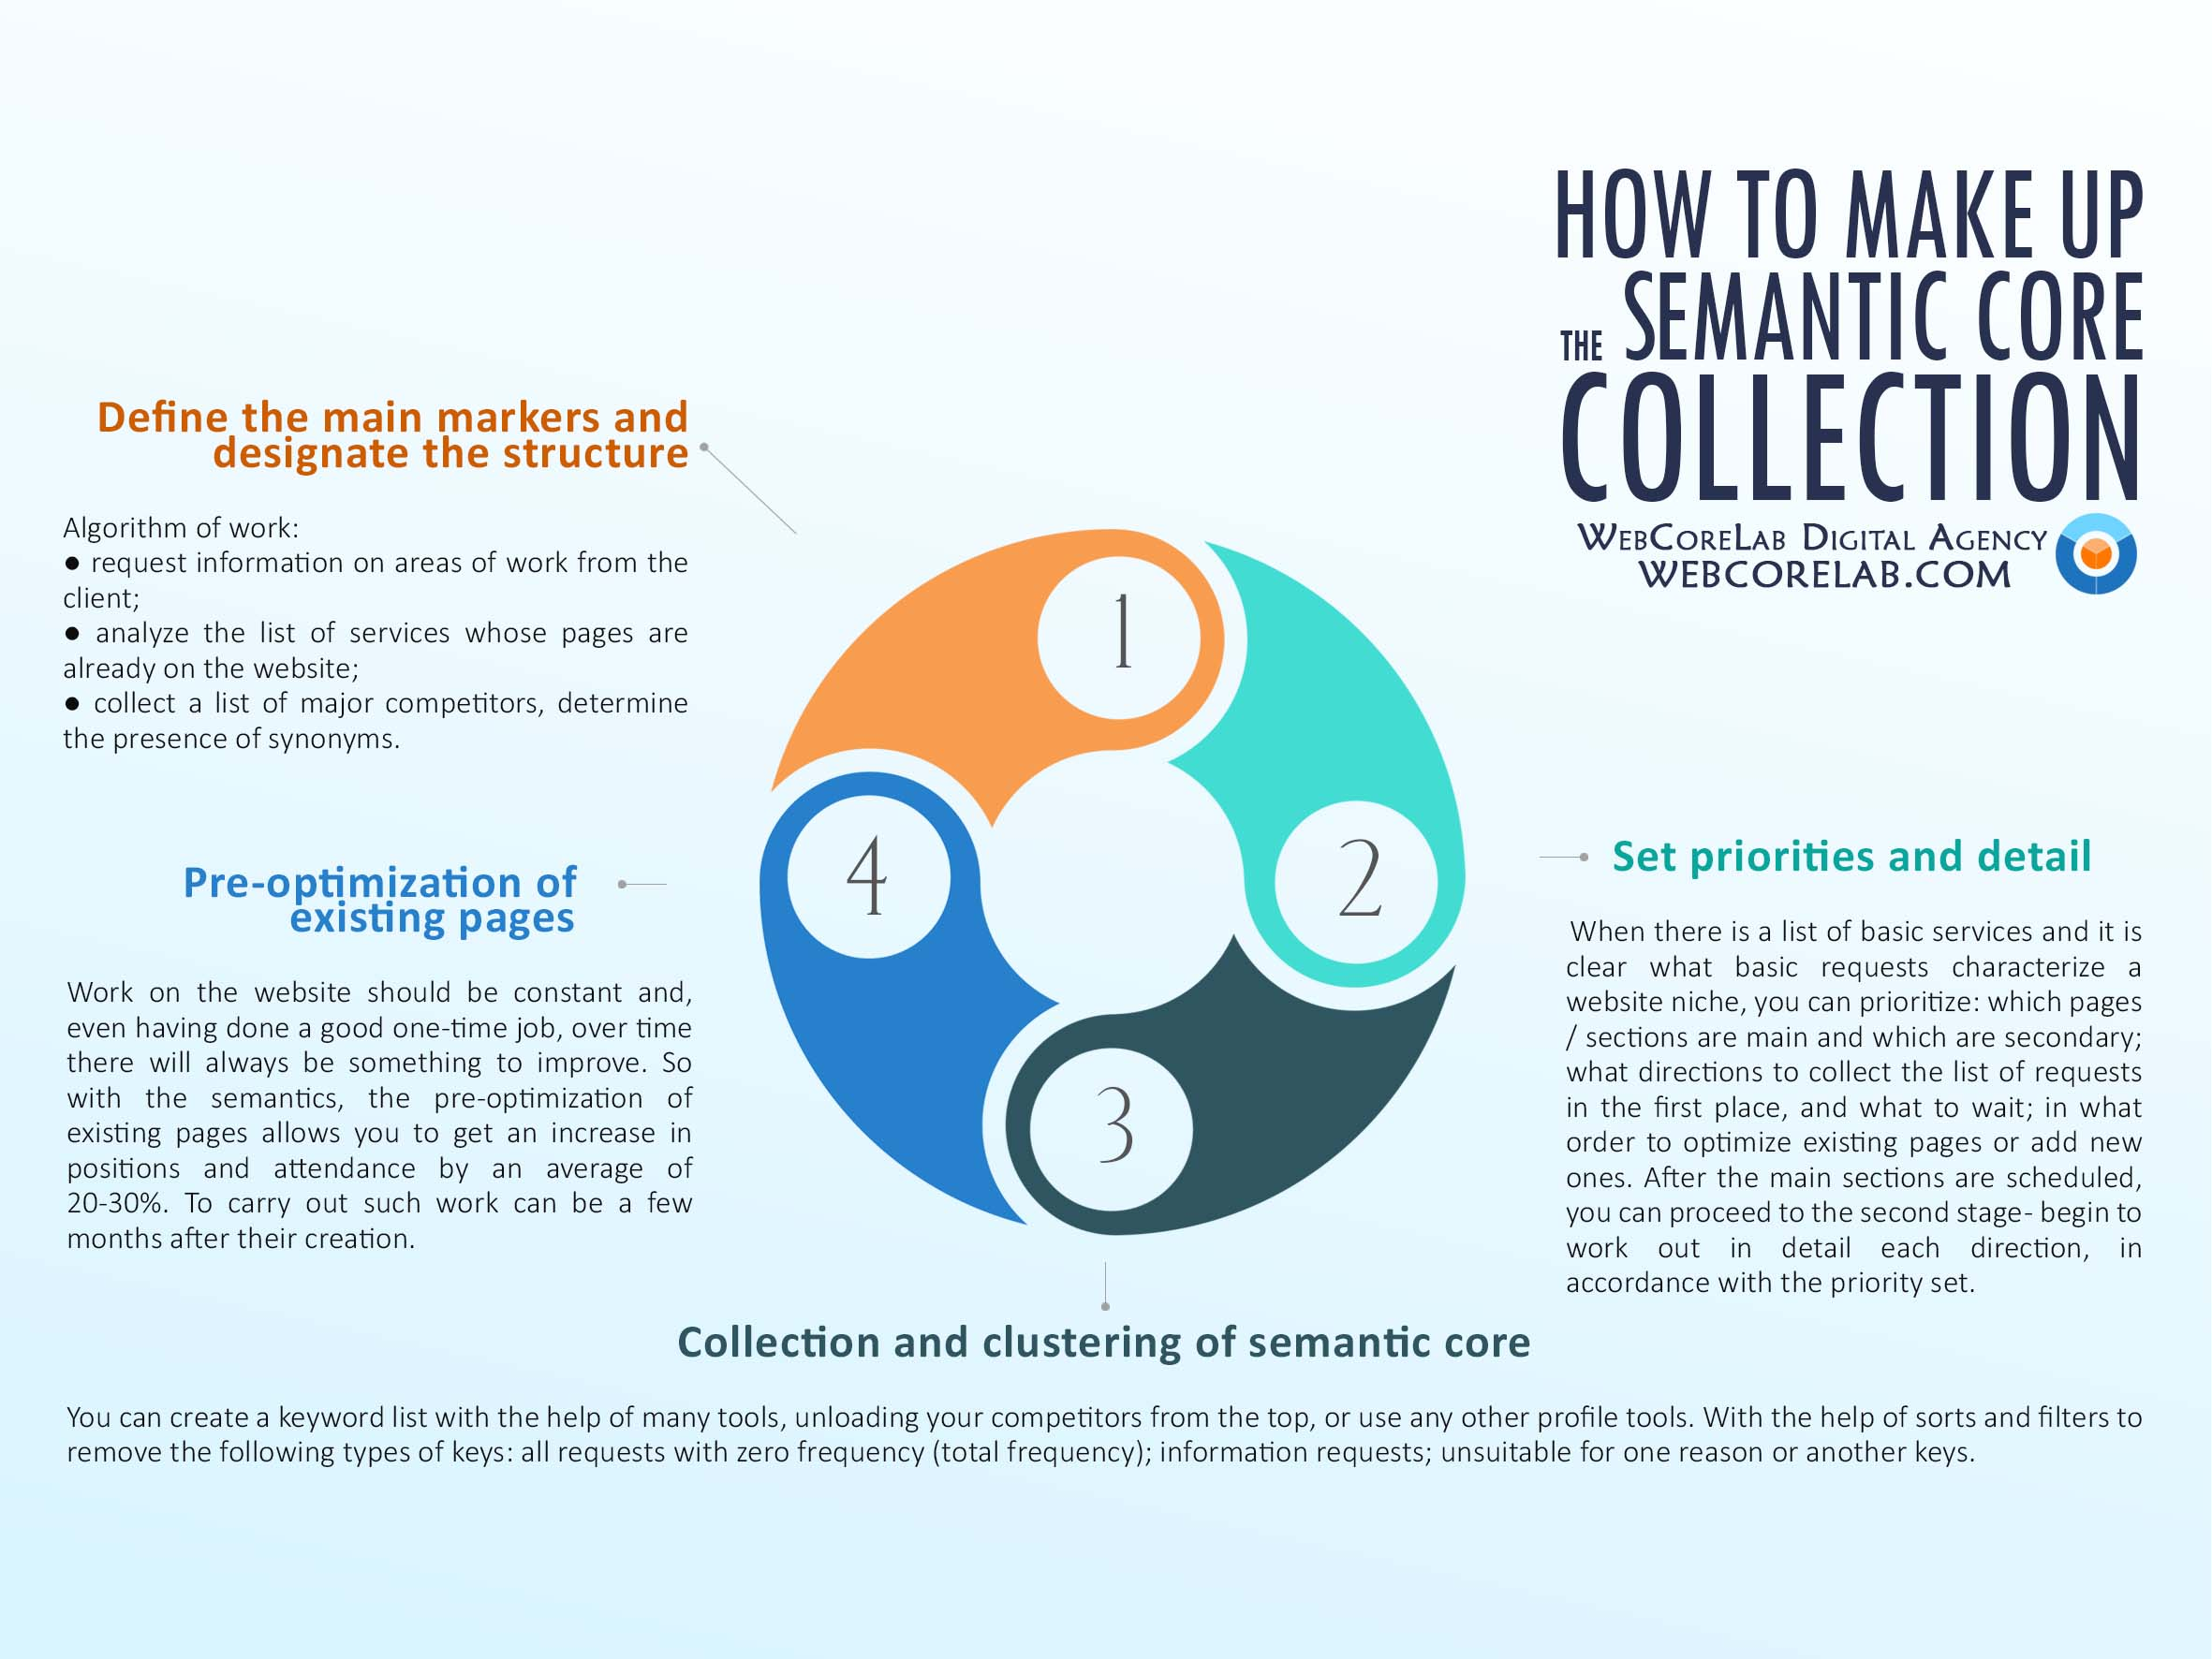 How to make up the semantic core collection